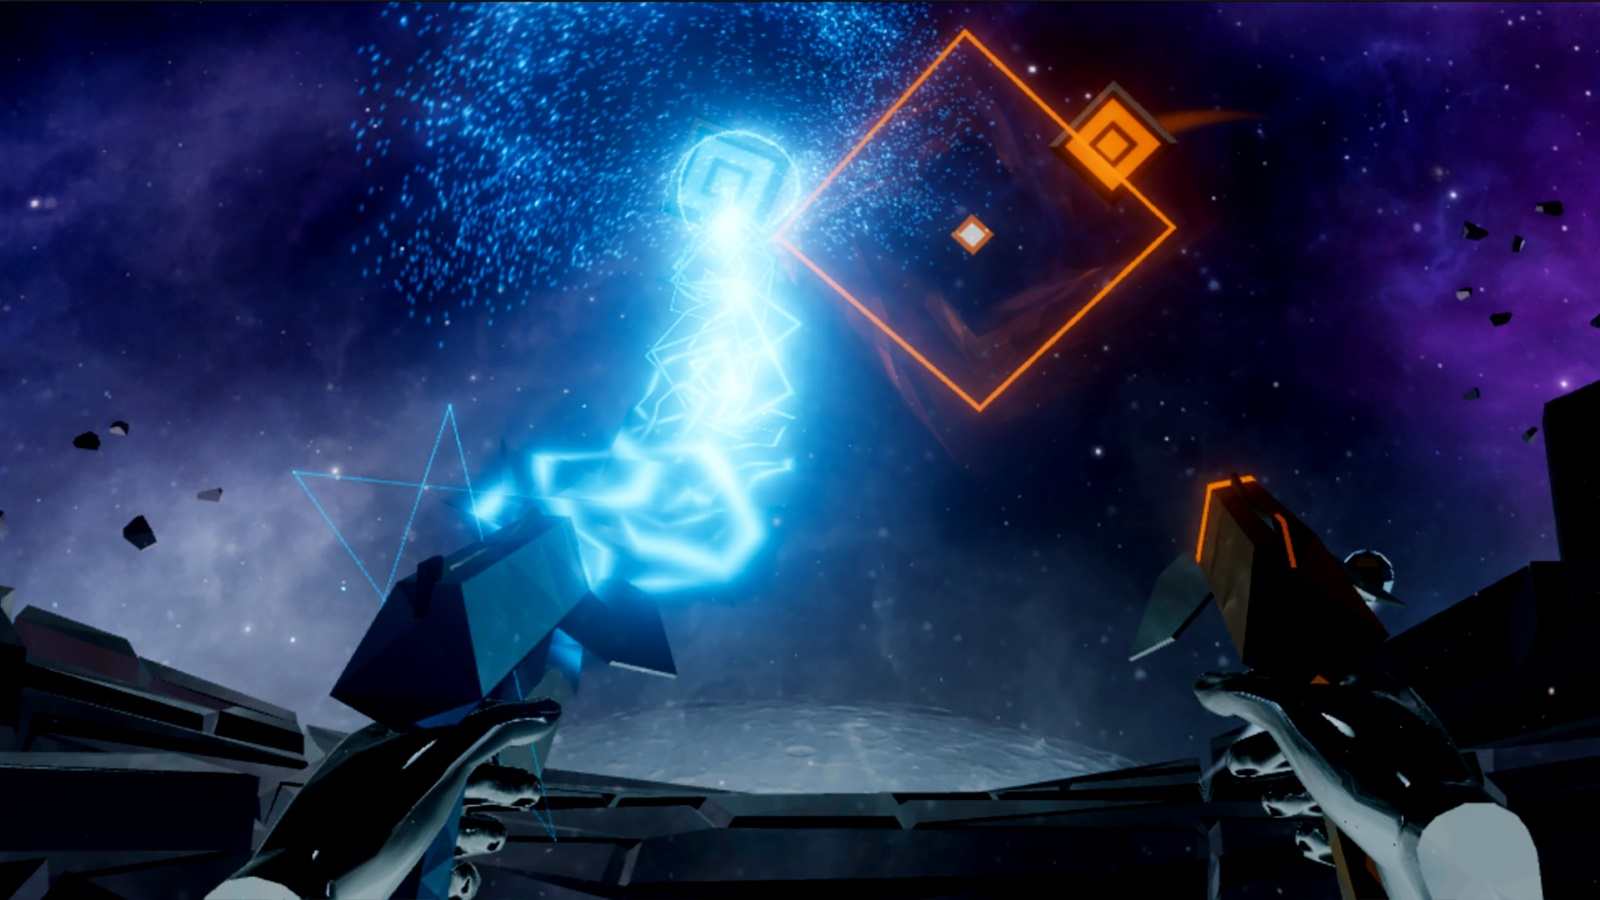 Harmonix turn VR gunfire into music in Audica this March